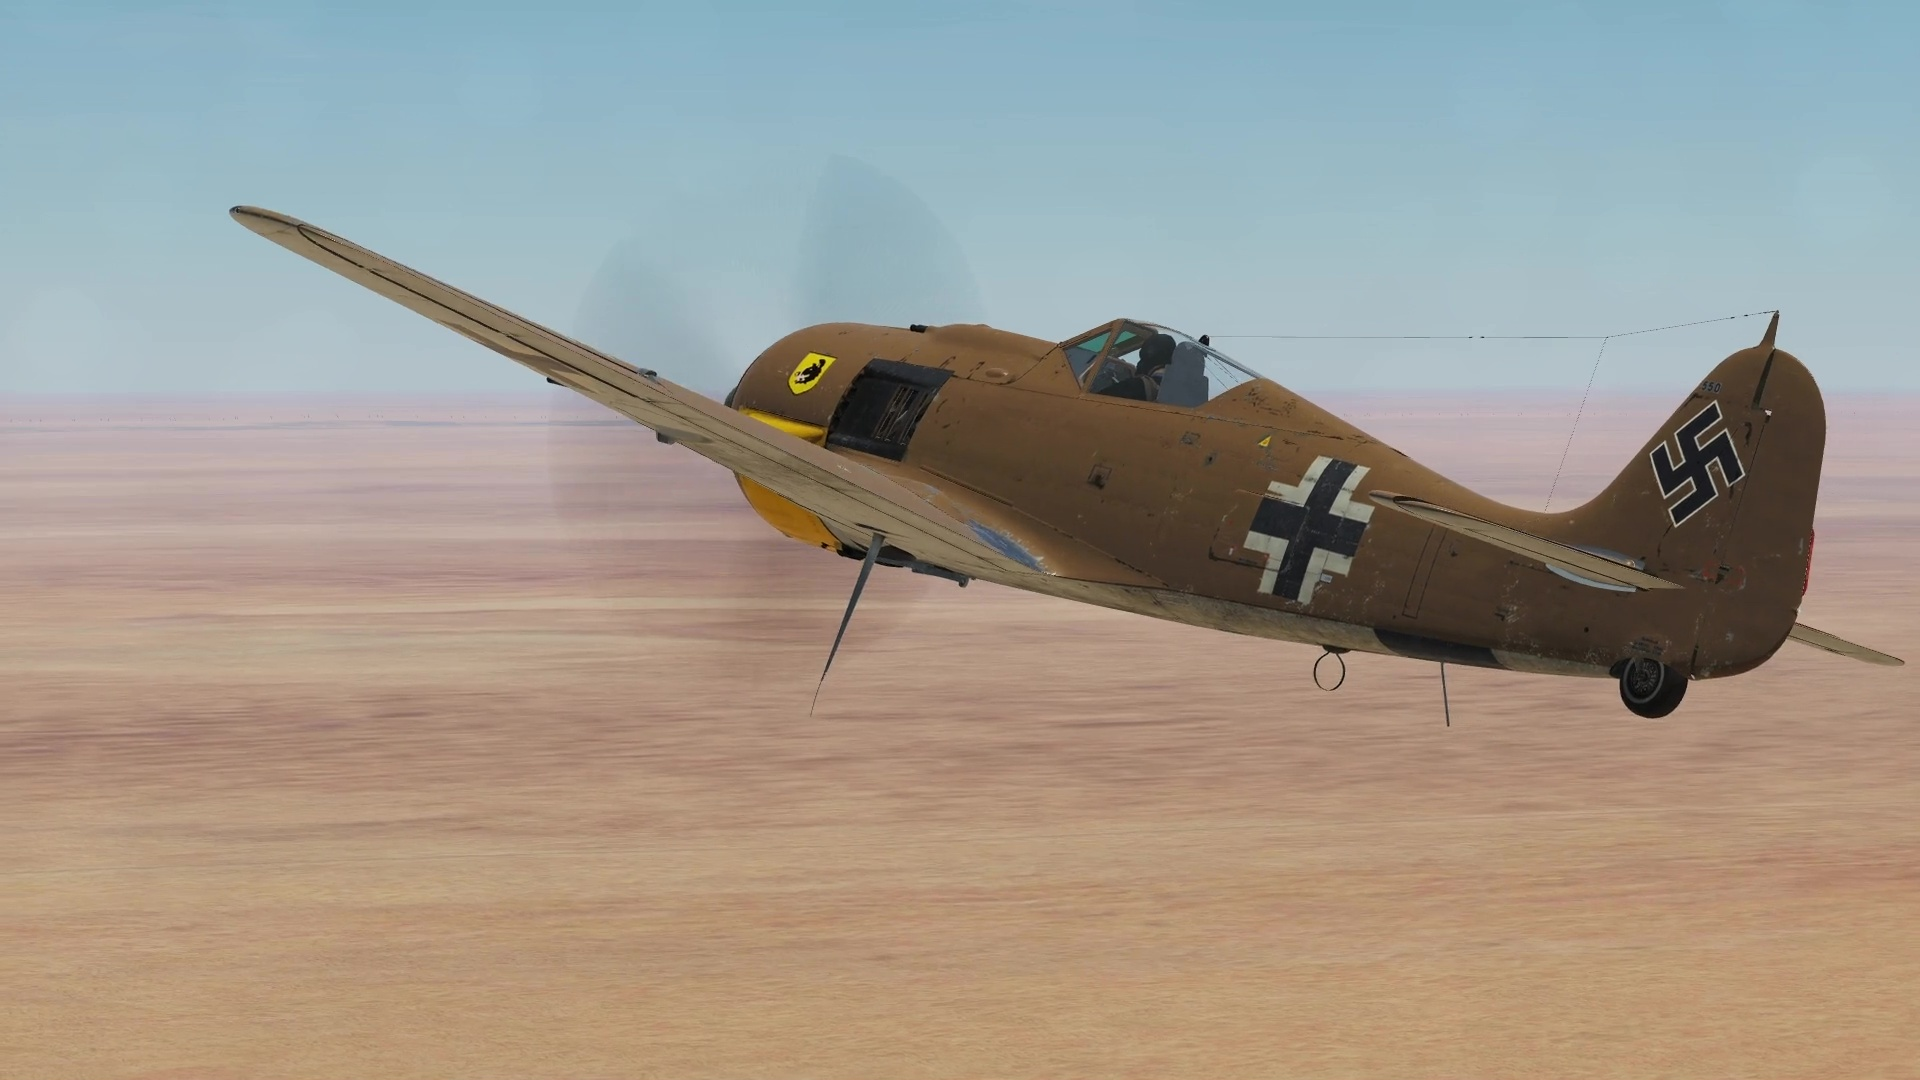 Tako Desert Wulf A-8 (without specken)